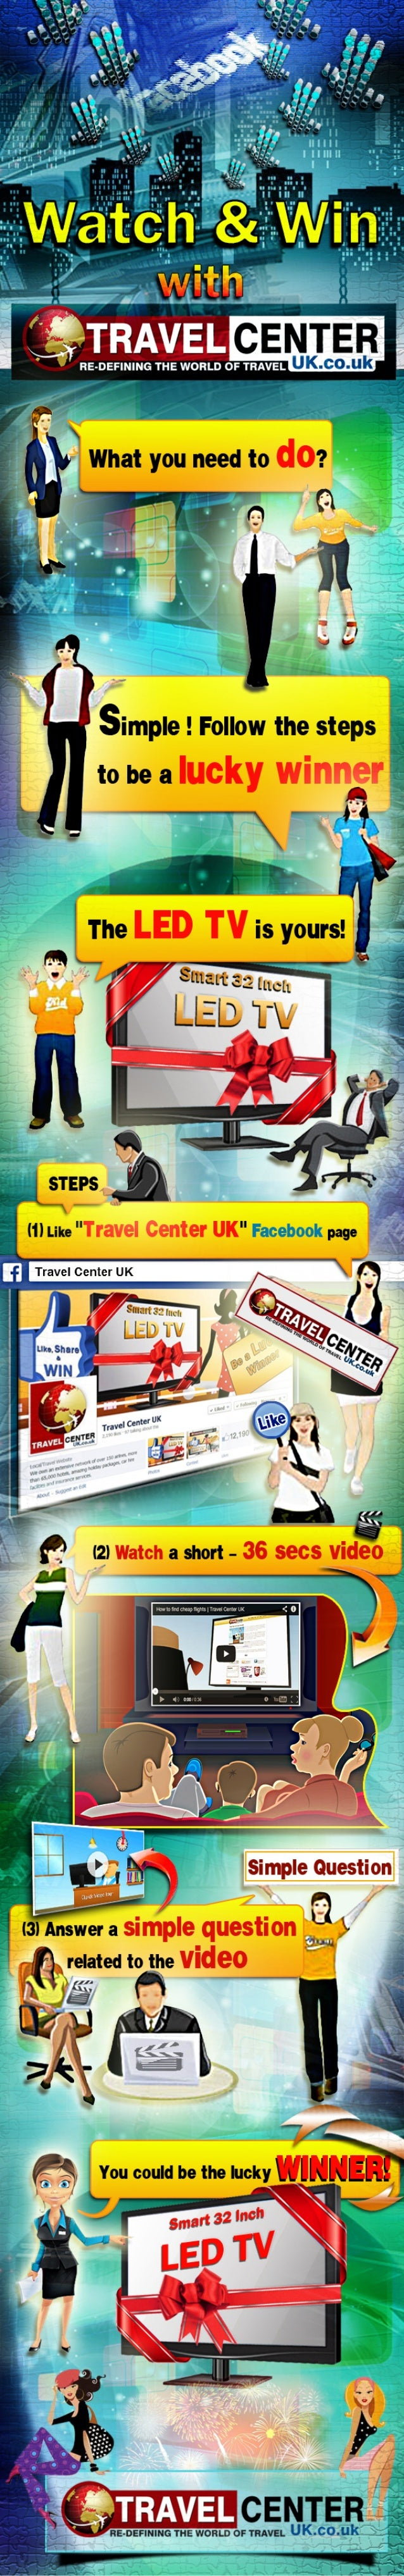 STAND A CHANCE TO WIN A STYLISH LED TV FROM TRAVEL CENTER UK !